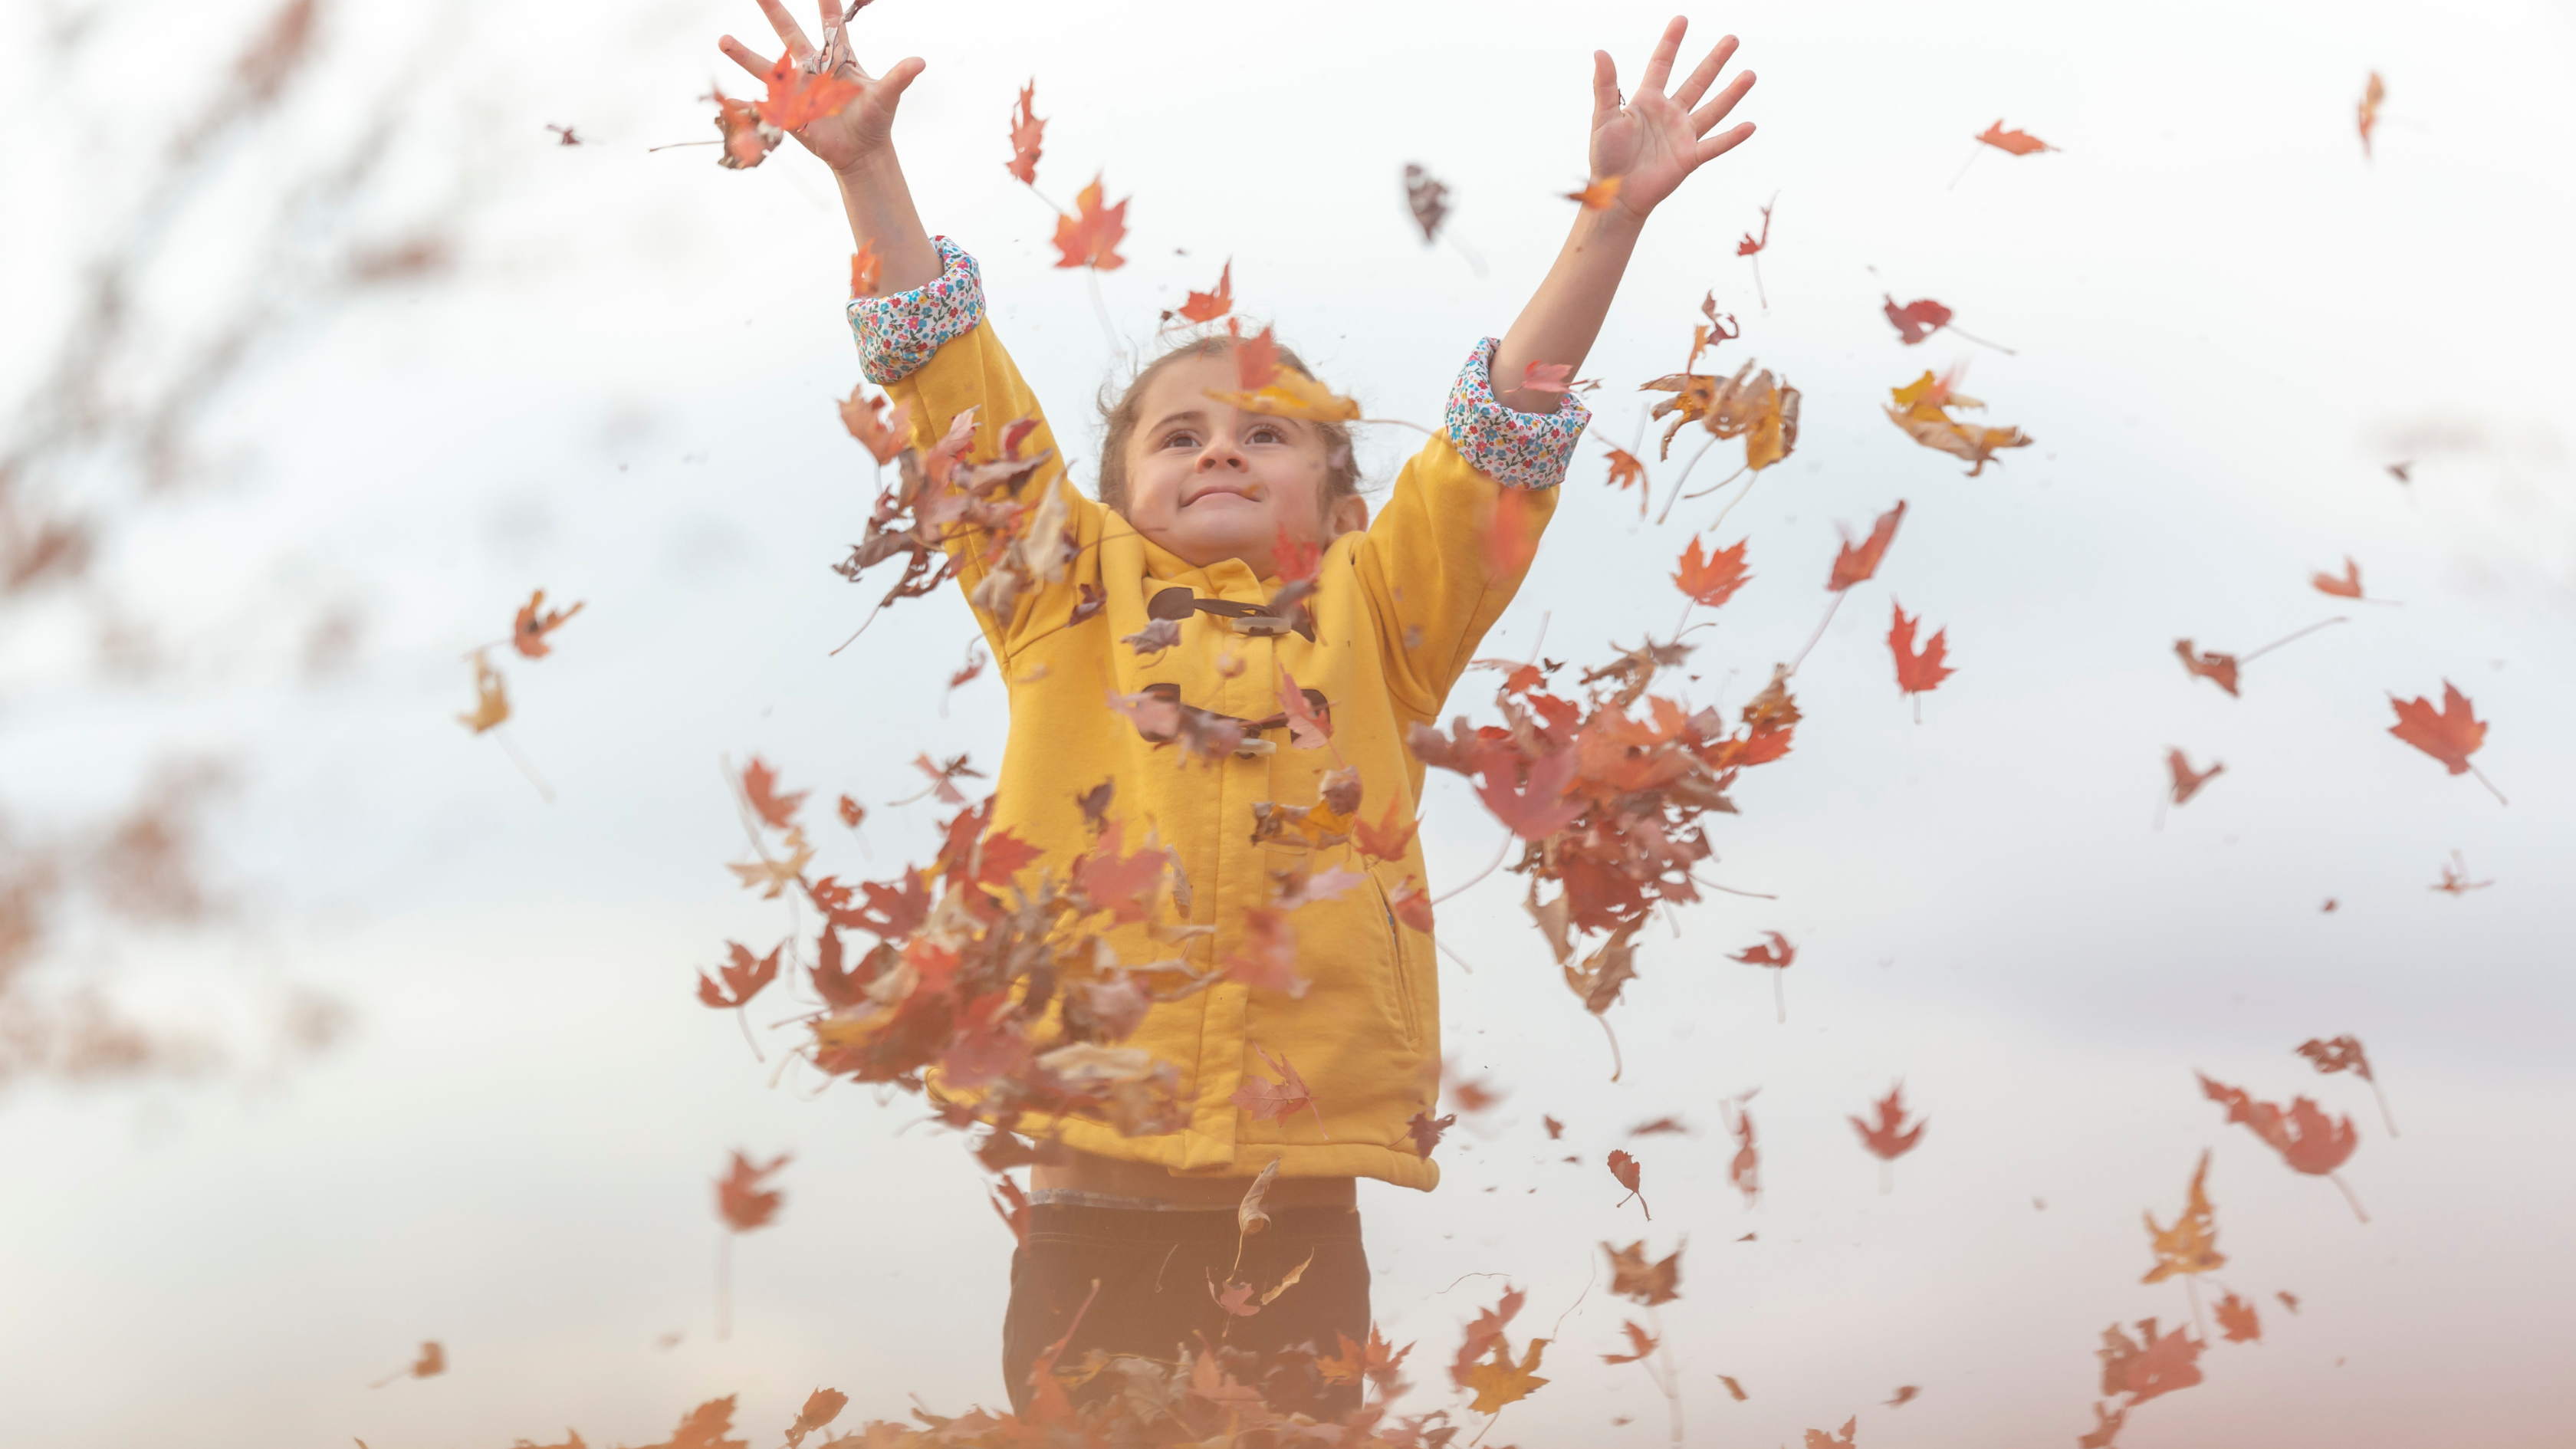 child throwing up leaves in the air